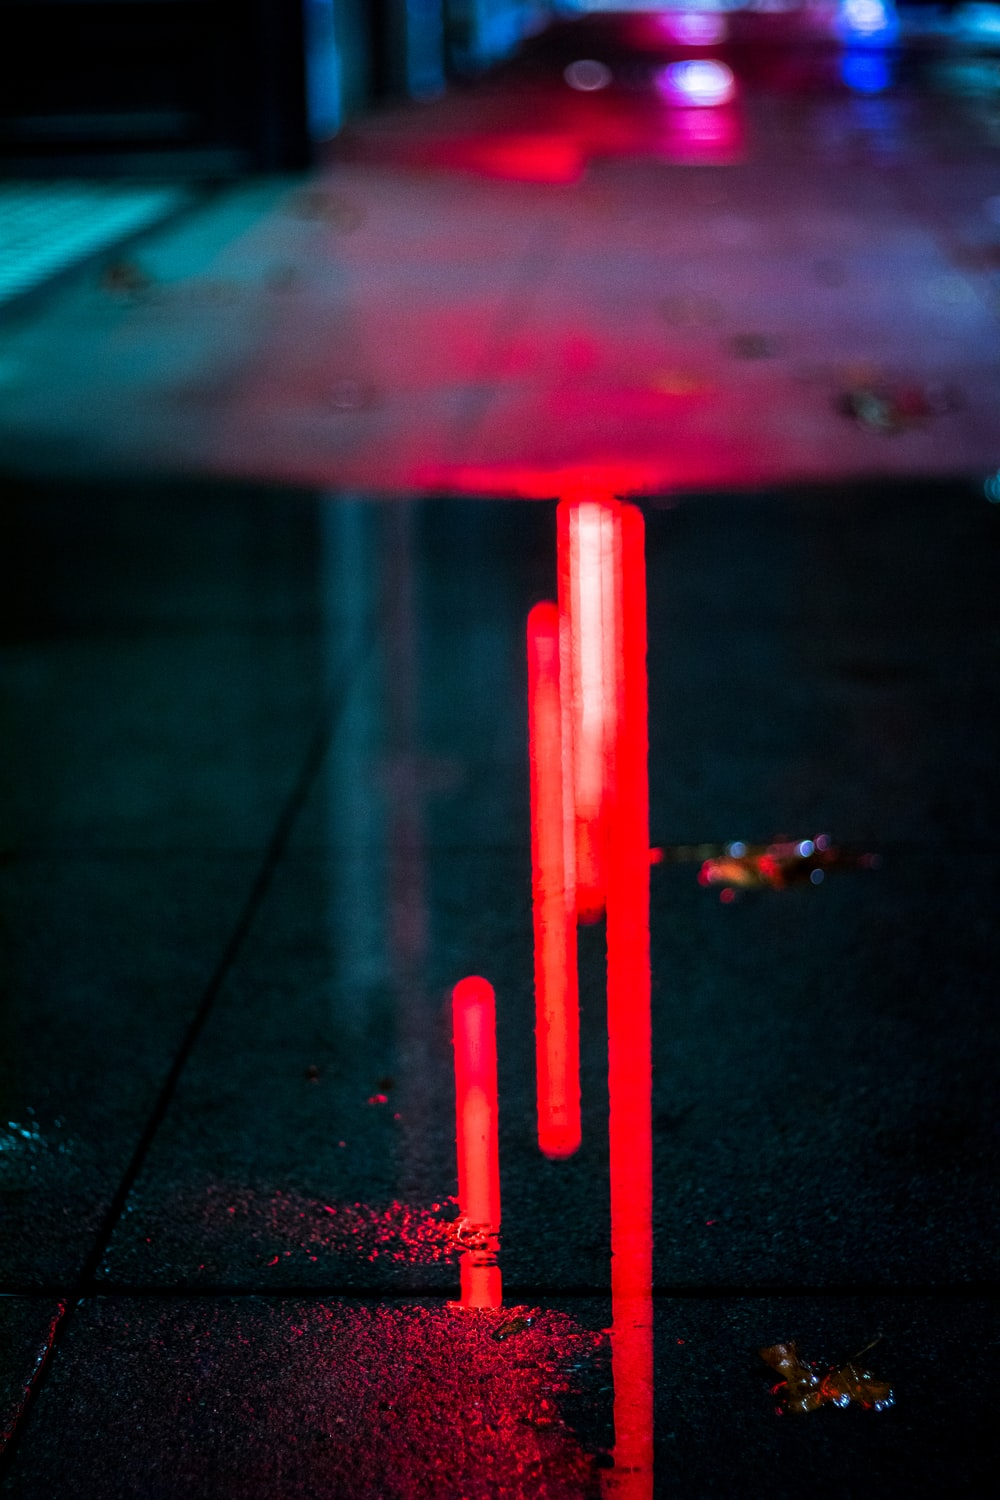 red light reflected on floor